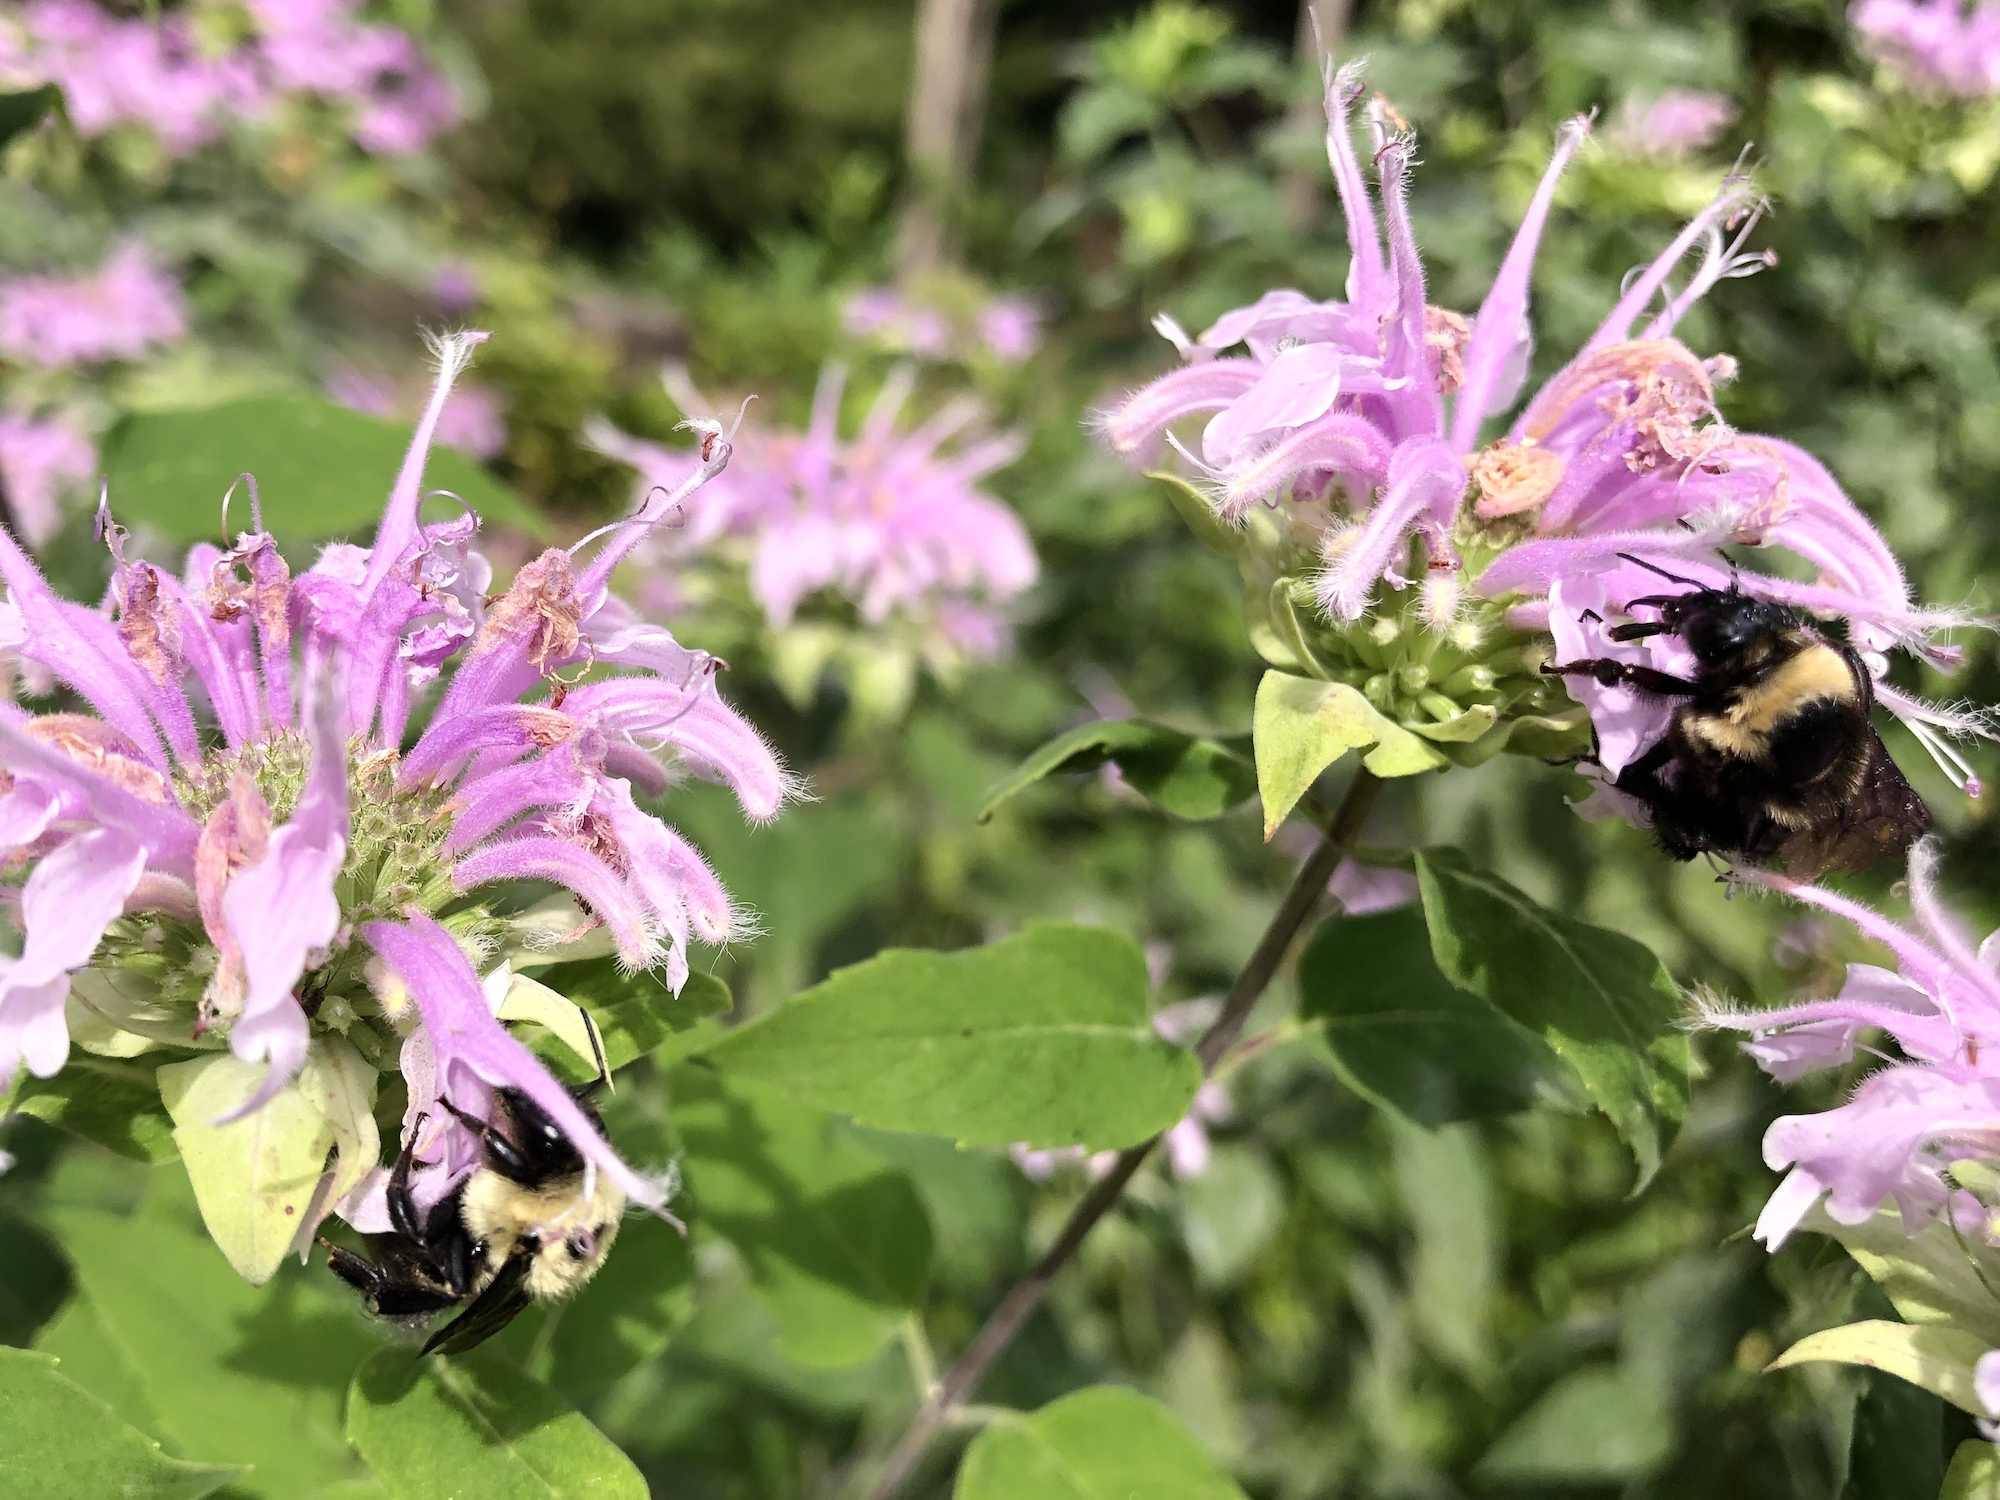 Bumblebees on Bergamot on August 22, 2020.